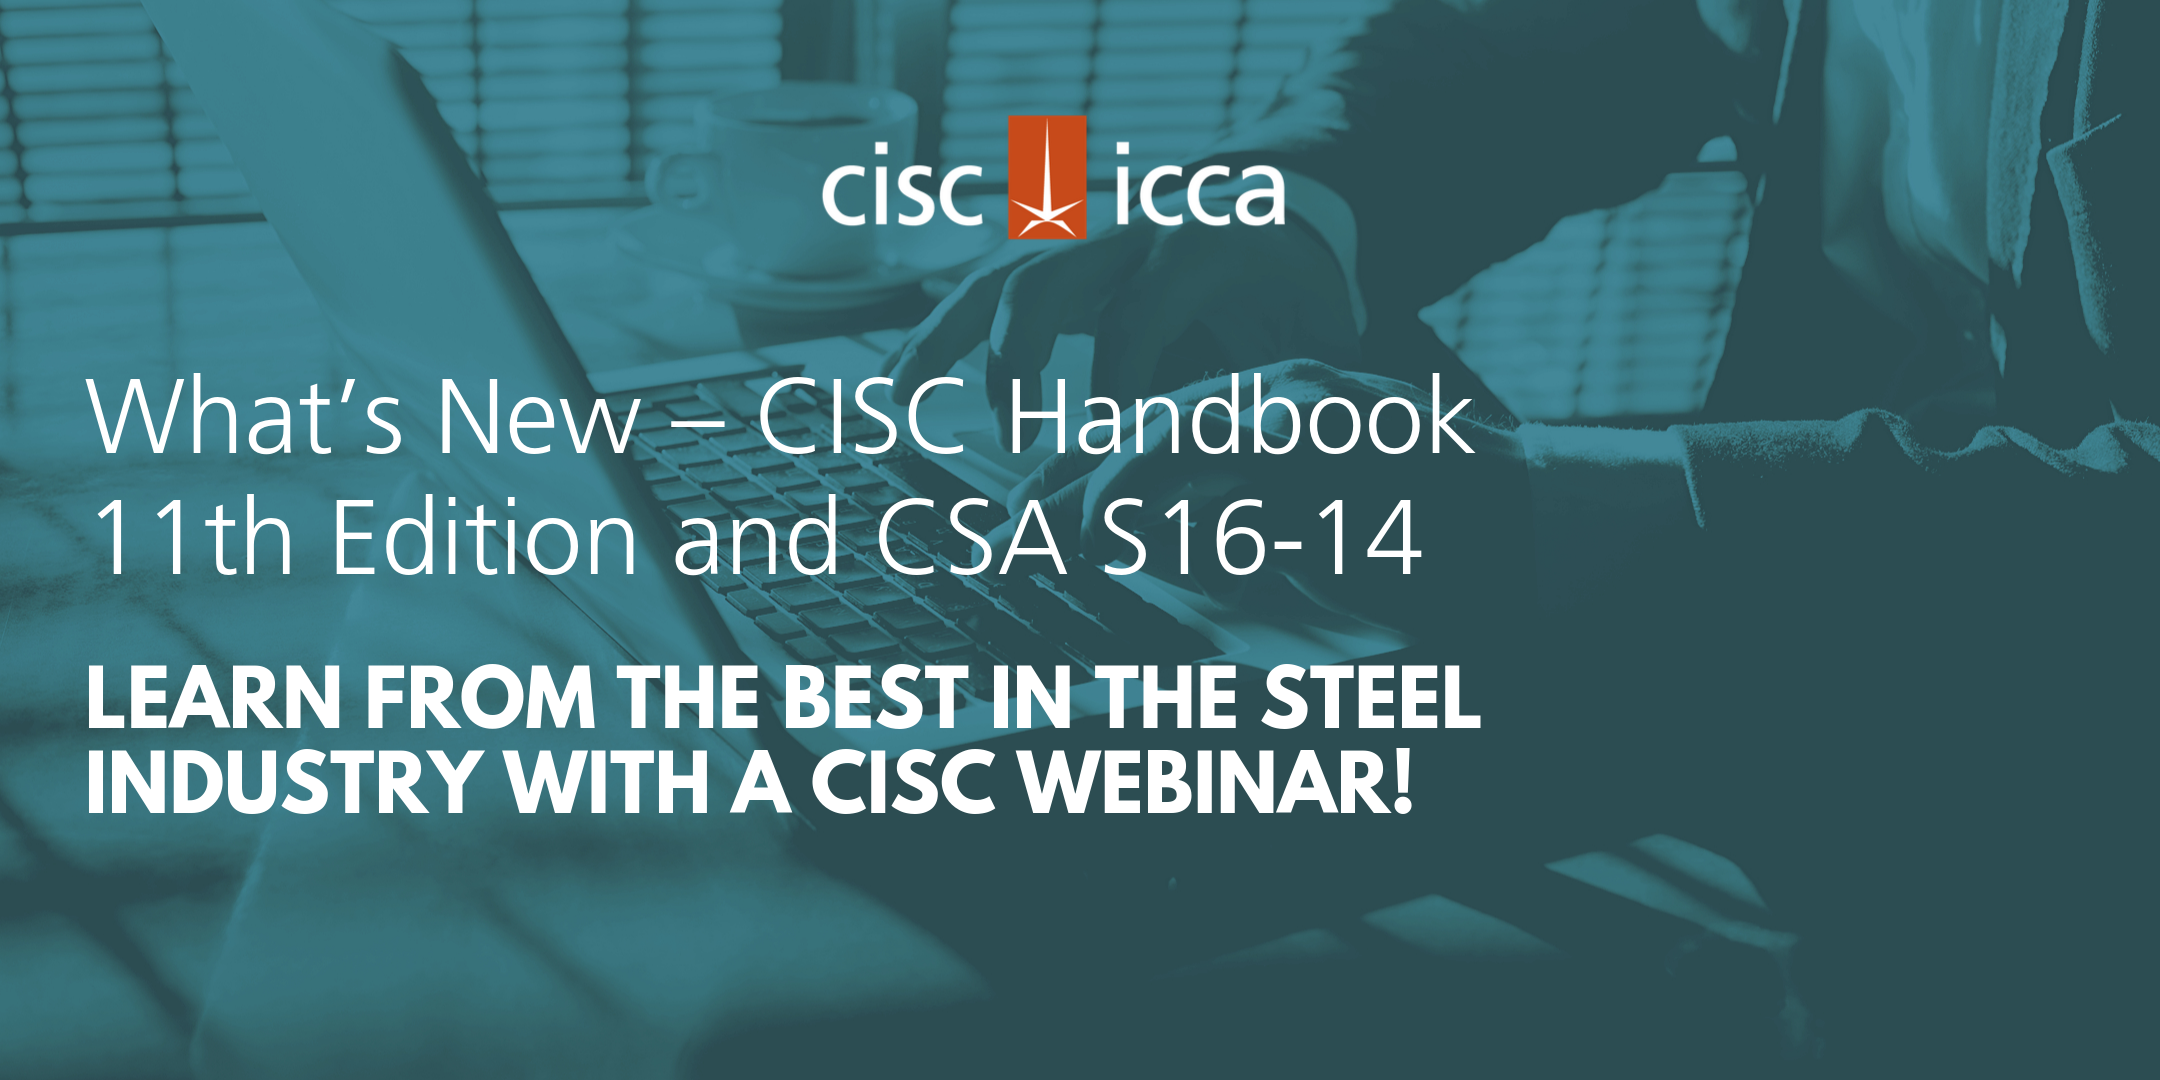 CISC What's New: Handbook and CSA S16-14